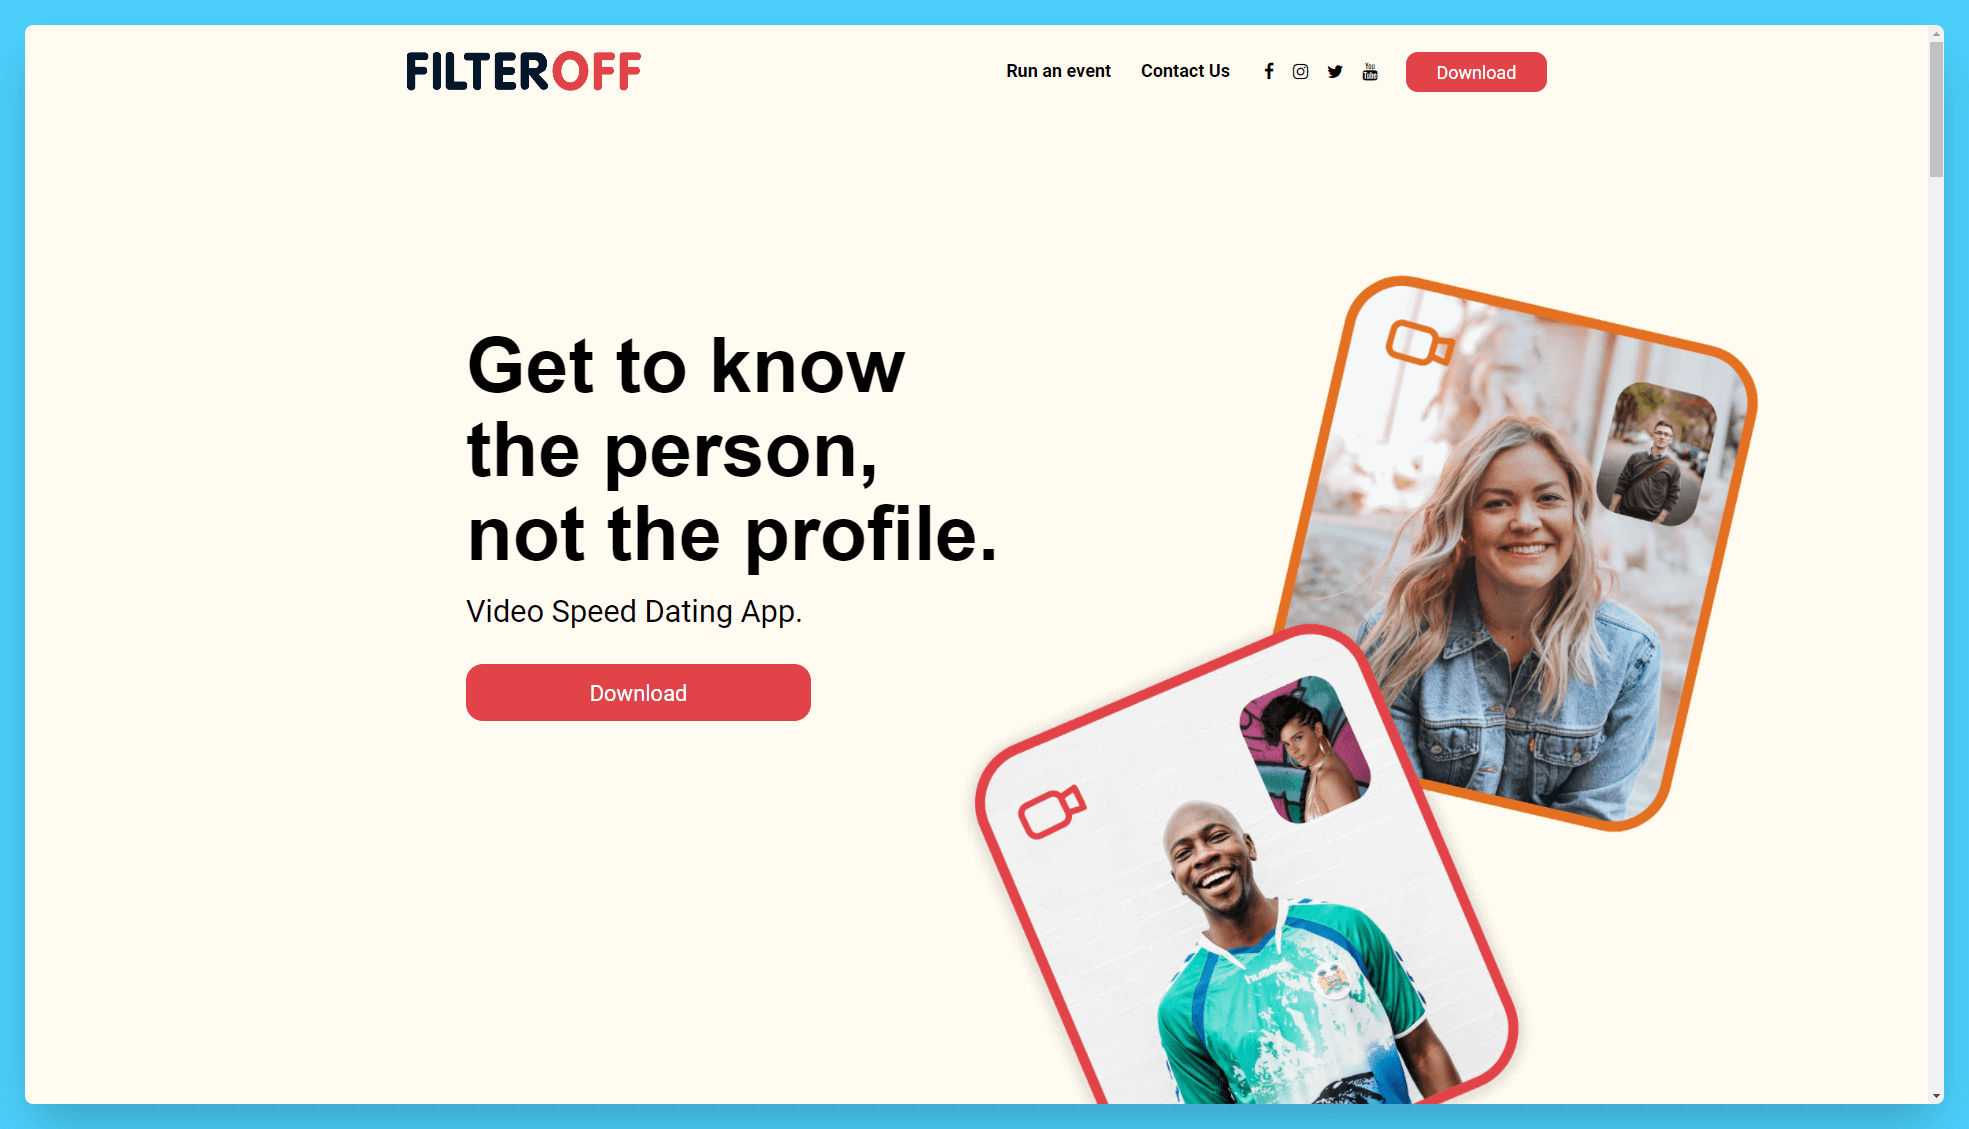 FilterOff Landing Page Layout SEO Tips Example Using Colors